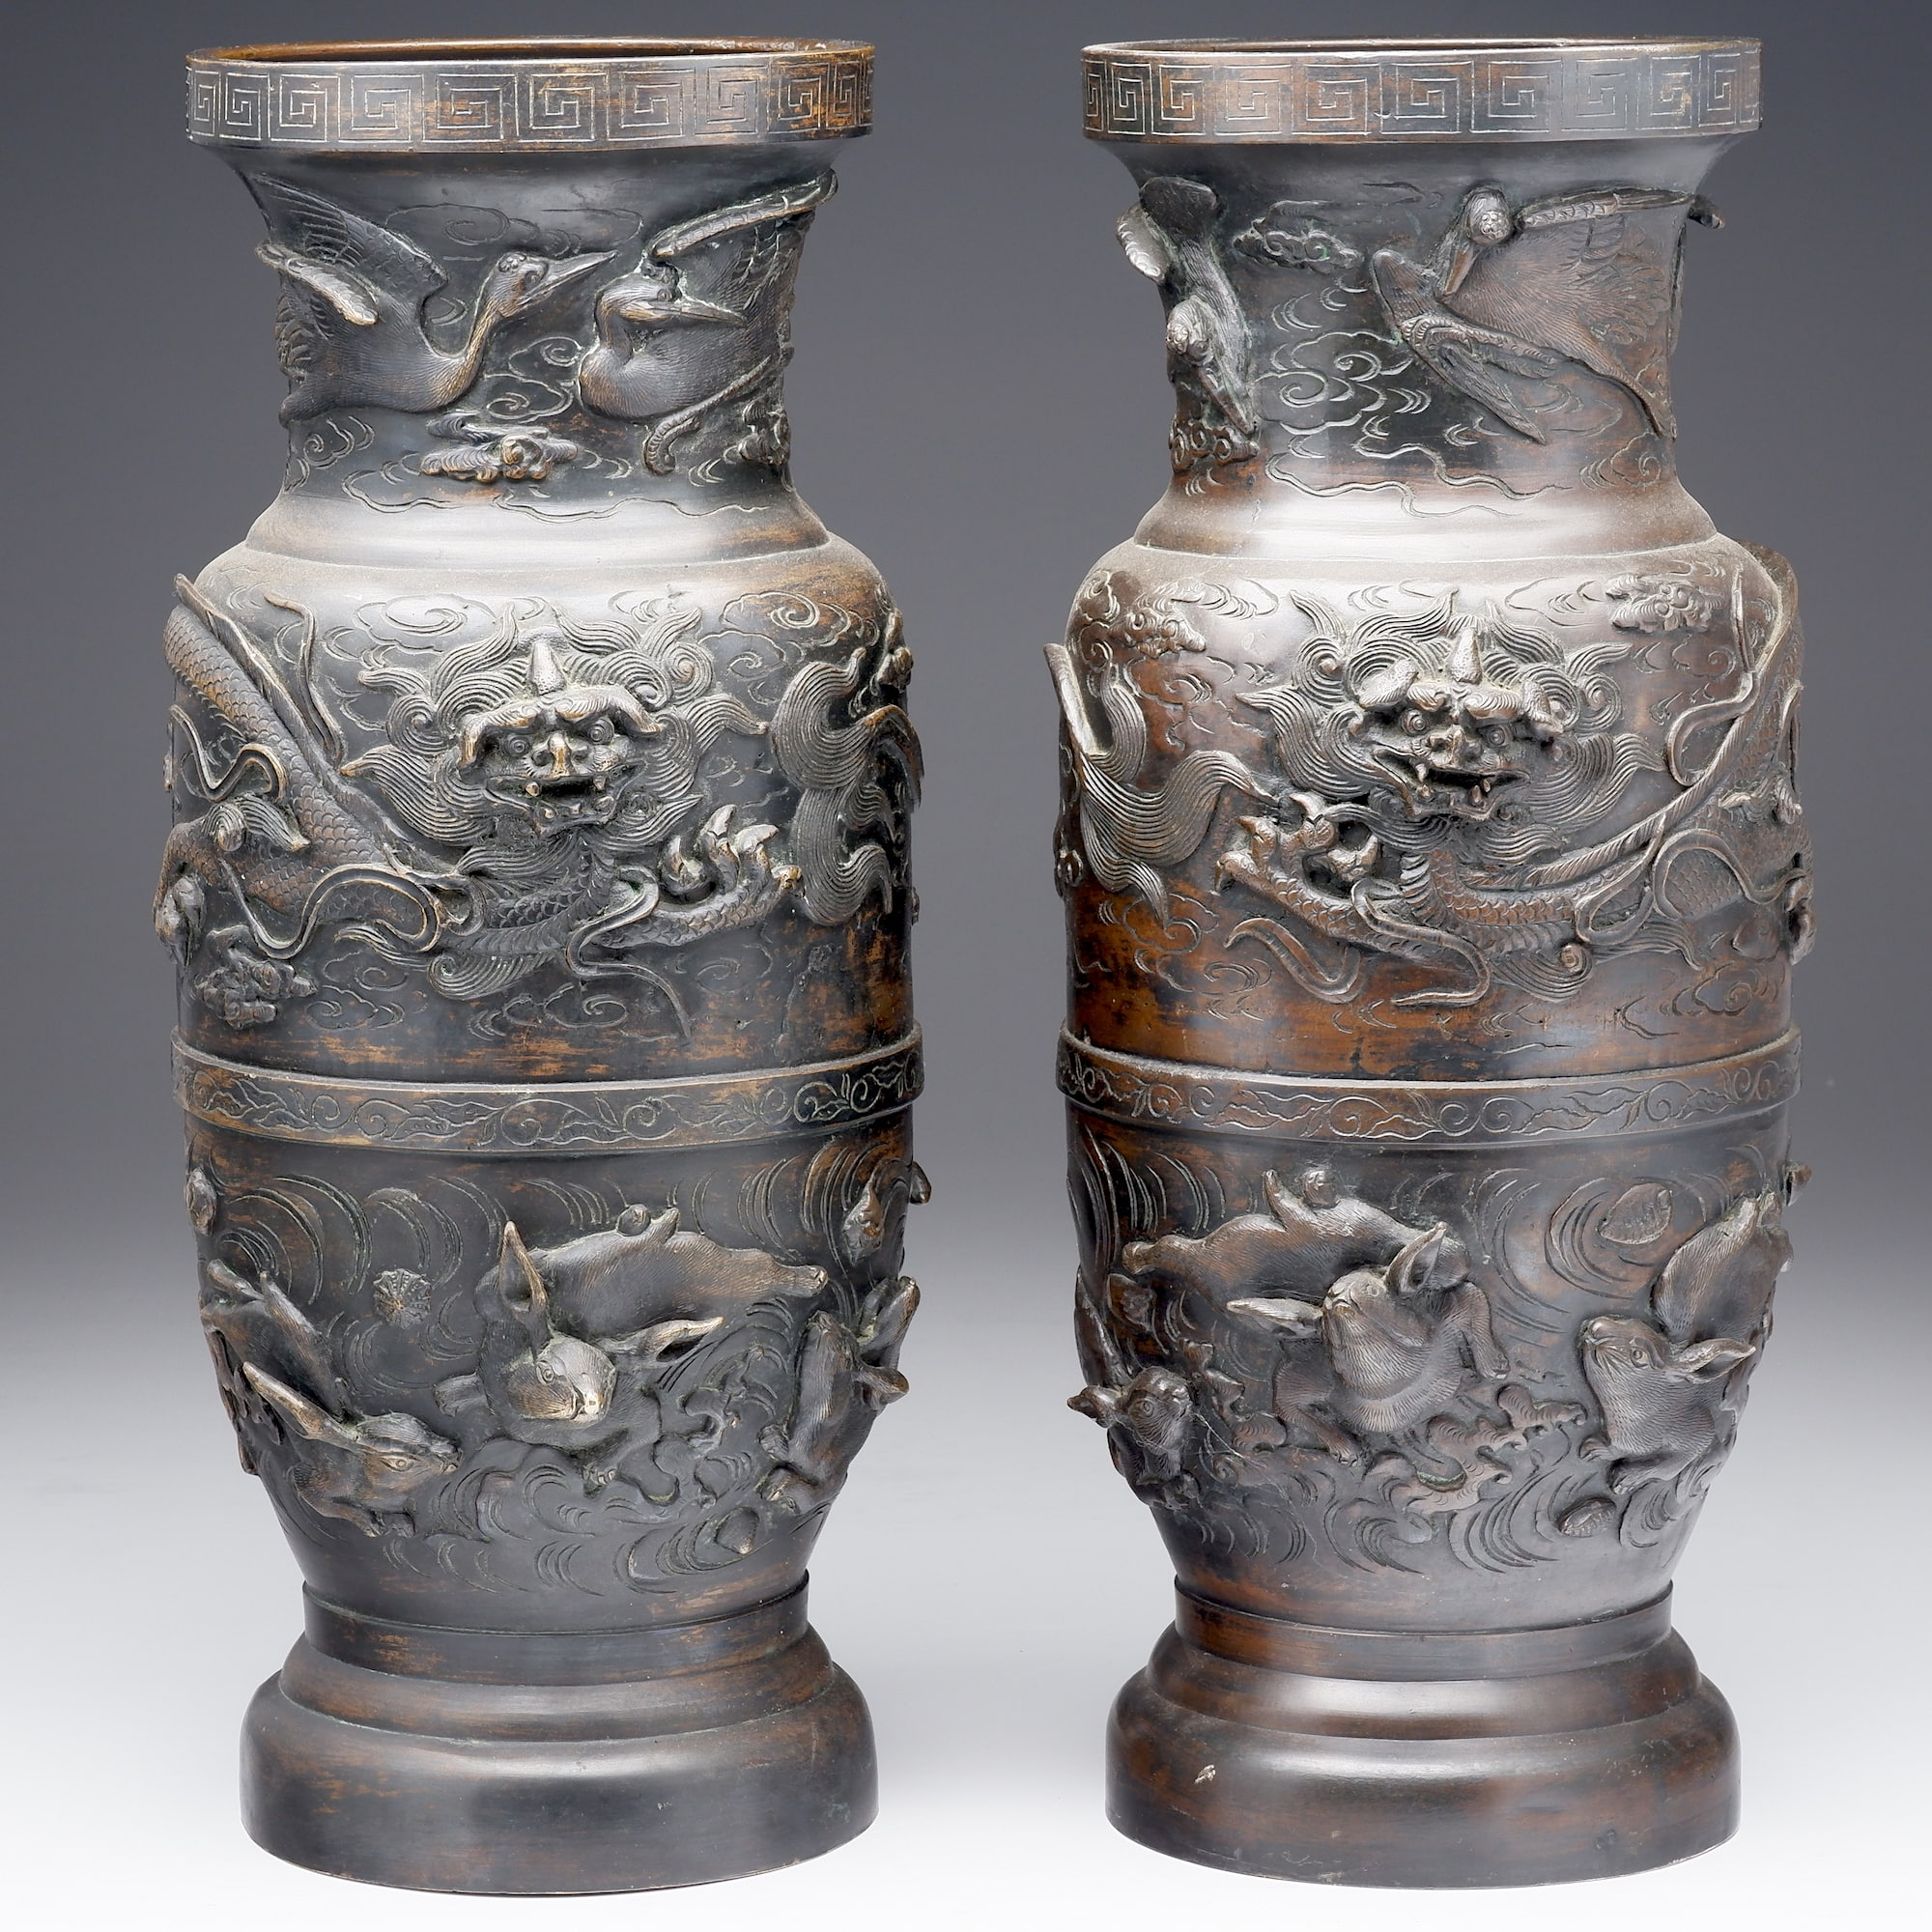 'Impressive Pair of Japanese Relief Cast and Chased Bronze Vases, Meiji Period 1868-1912'